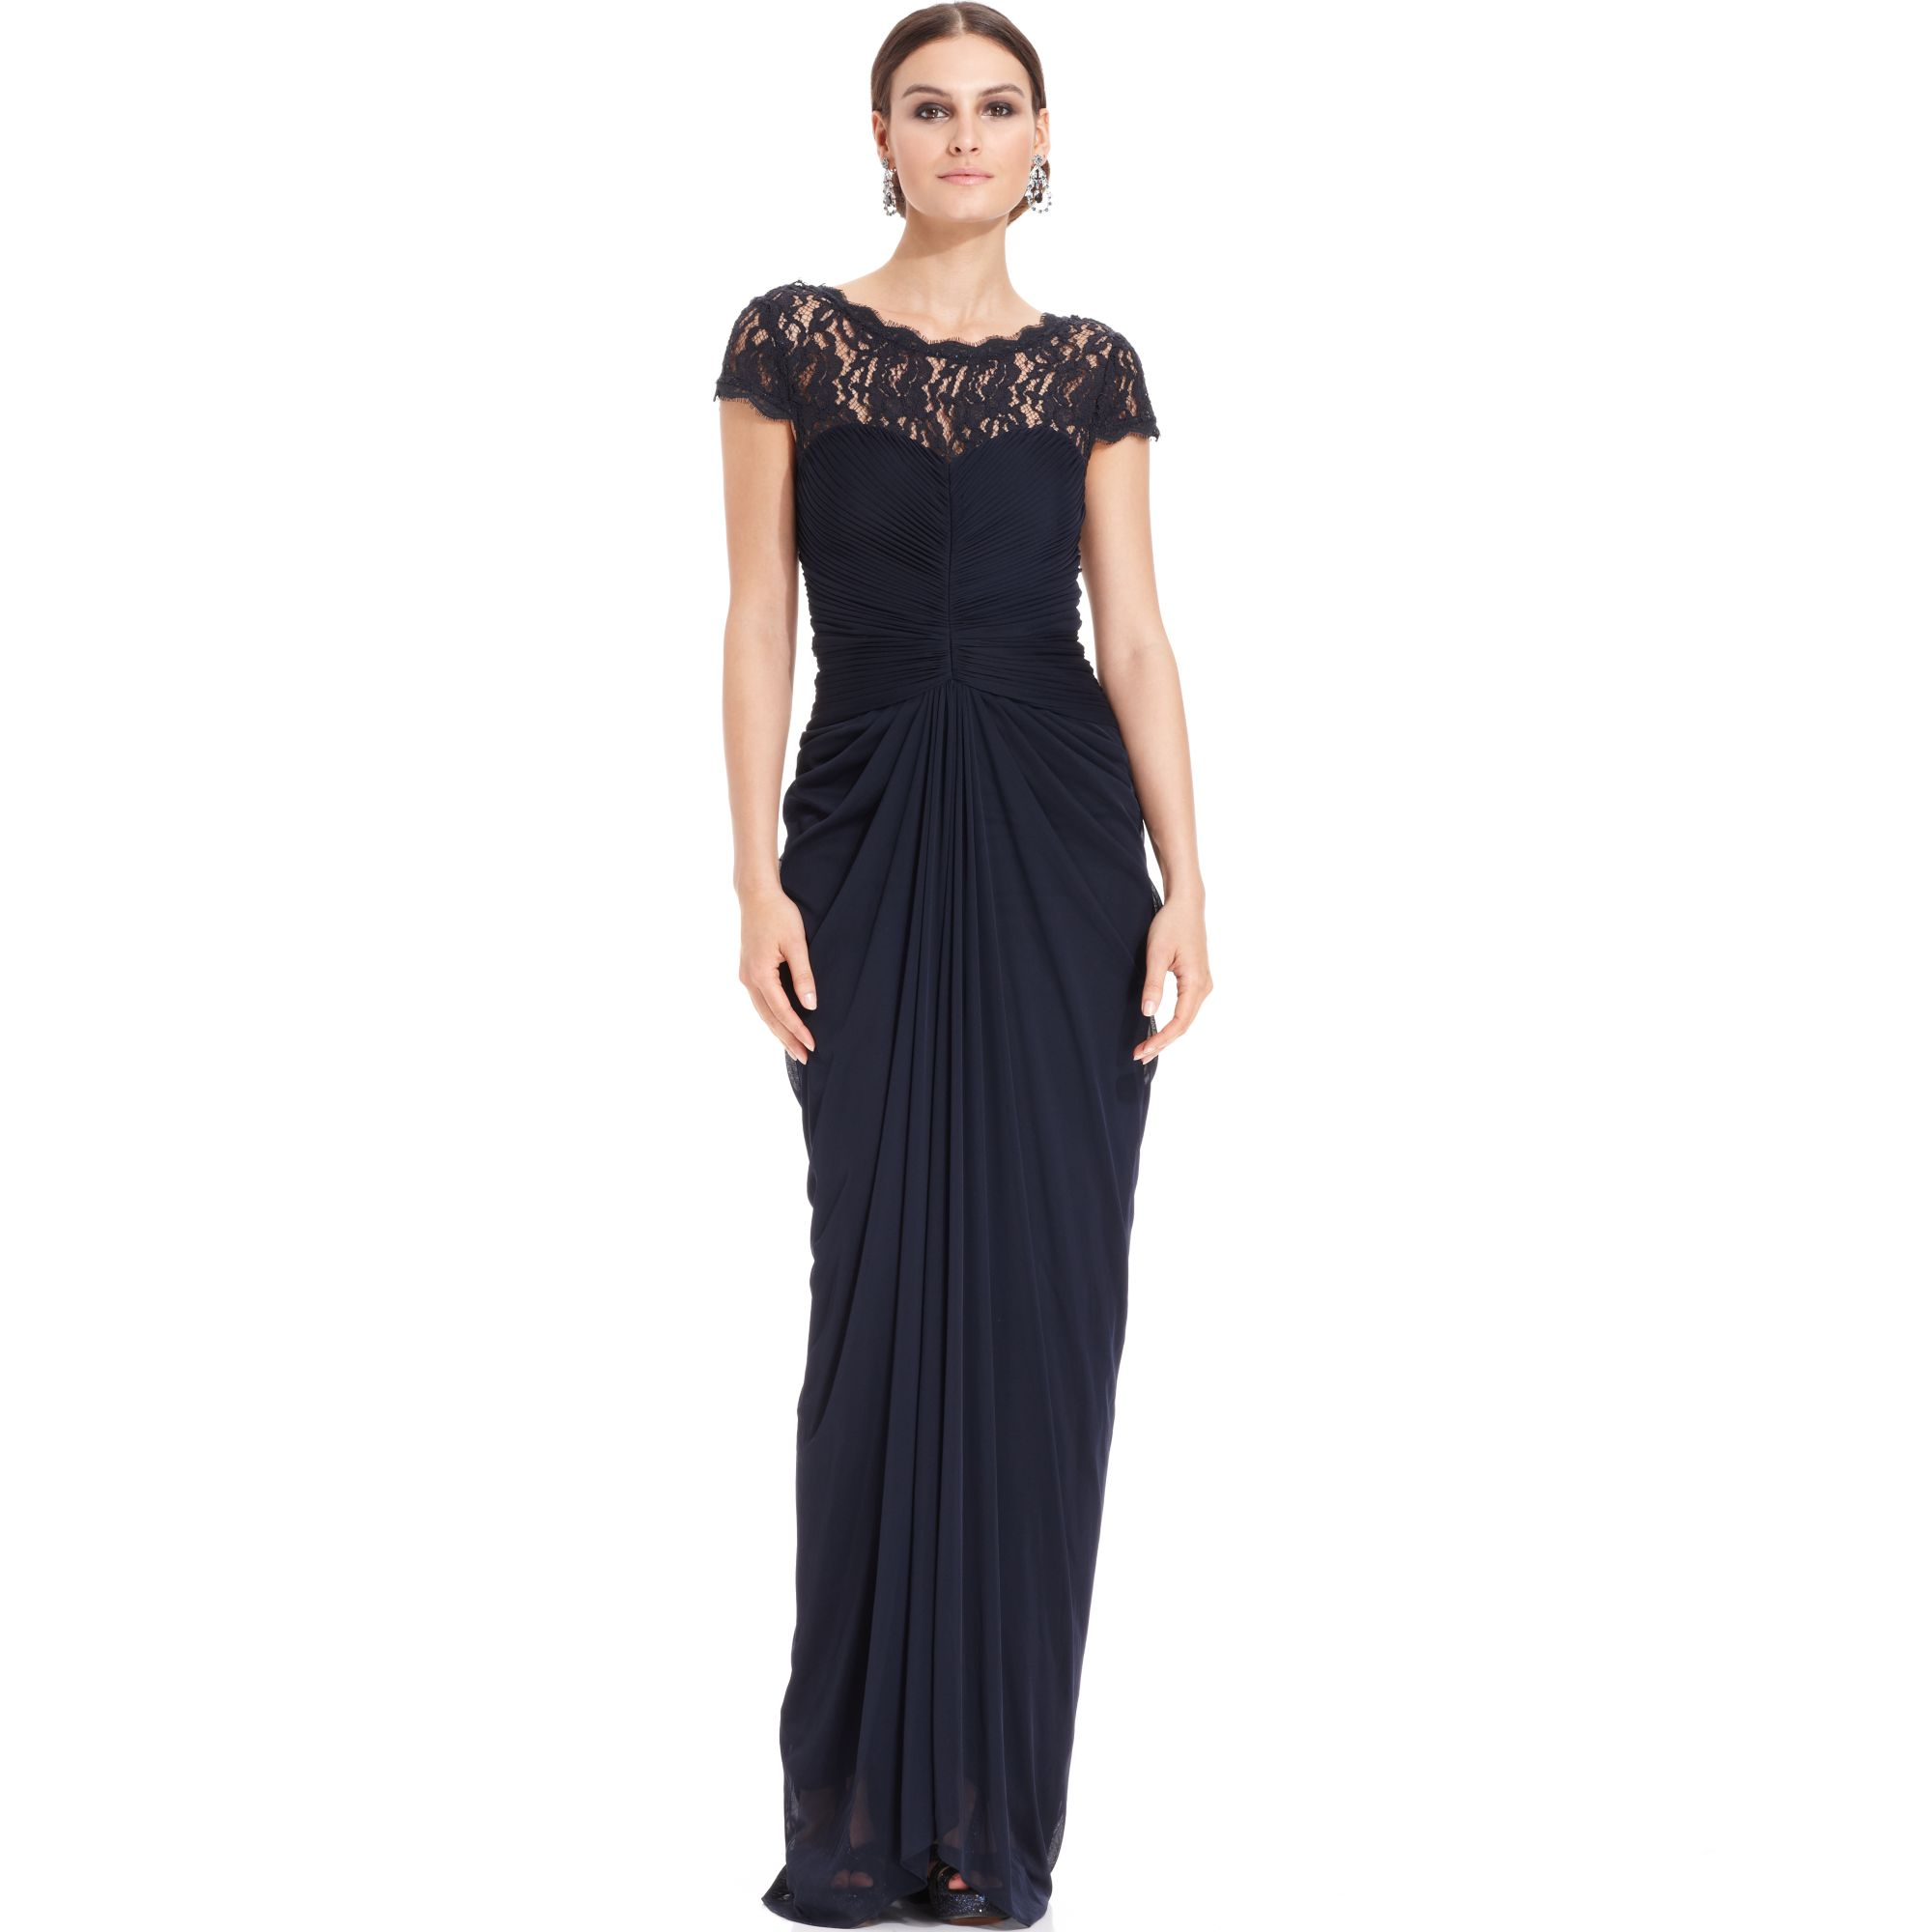 Lyst - Adrianna Papell Shortsleeve Illusion Lace Pleat Gown in Blue